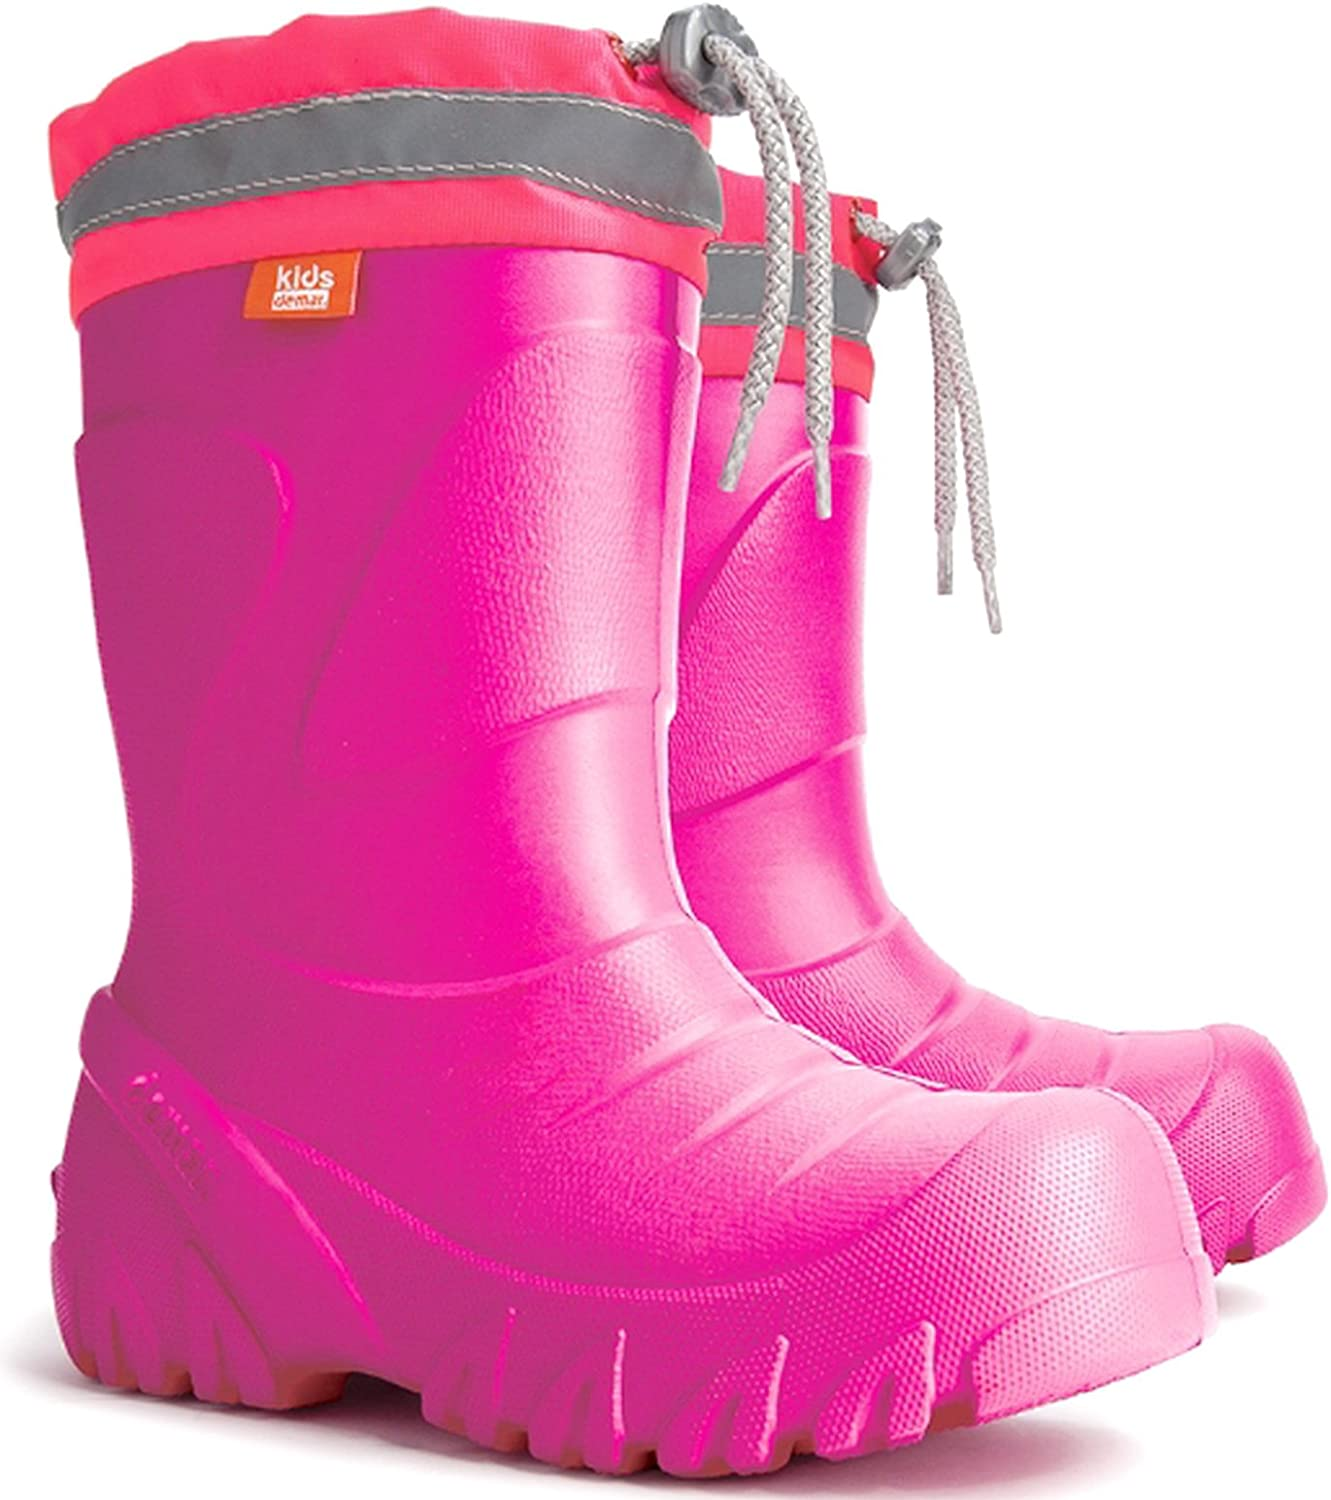 KIDS BOYS GIRLS WELLIES WELLINGTON BOOTS RAINY BOOTS SNOW BOOTS VARIOUS SIZES